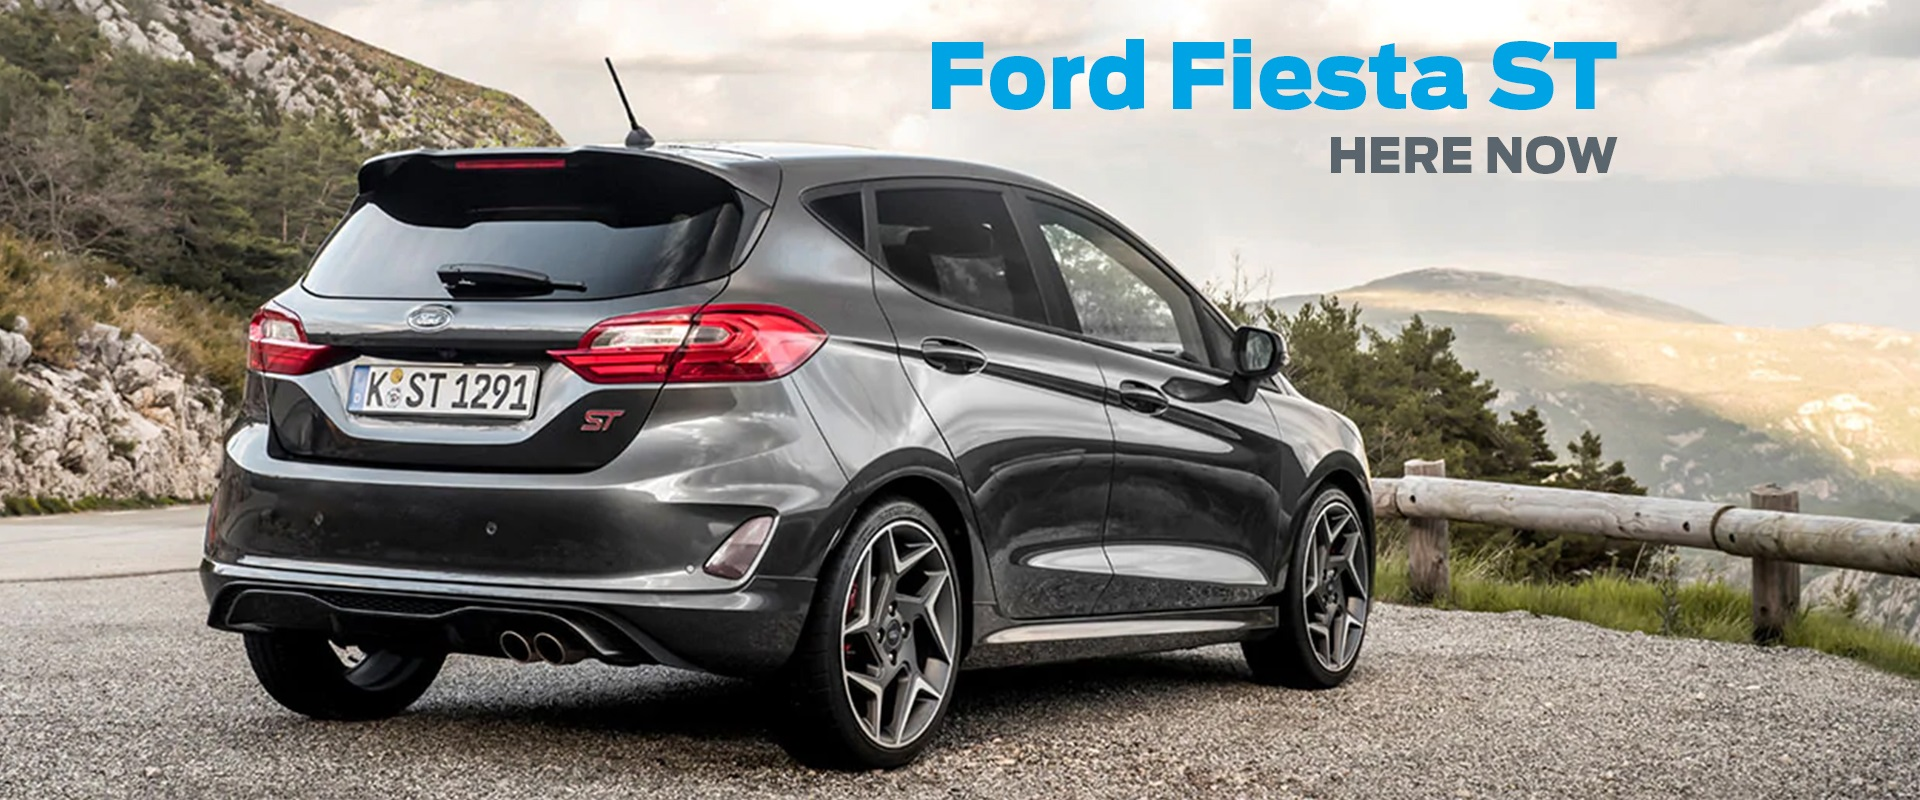 All New Ford Fiesta St Coming Soon To Range Ford